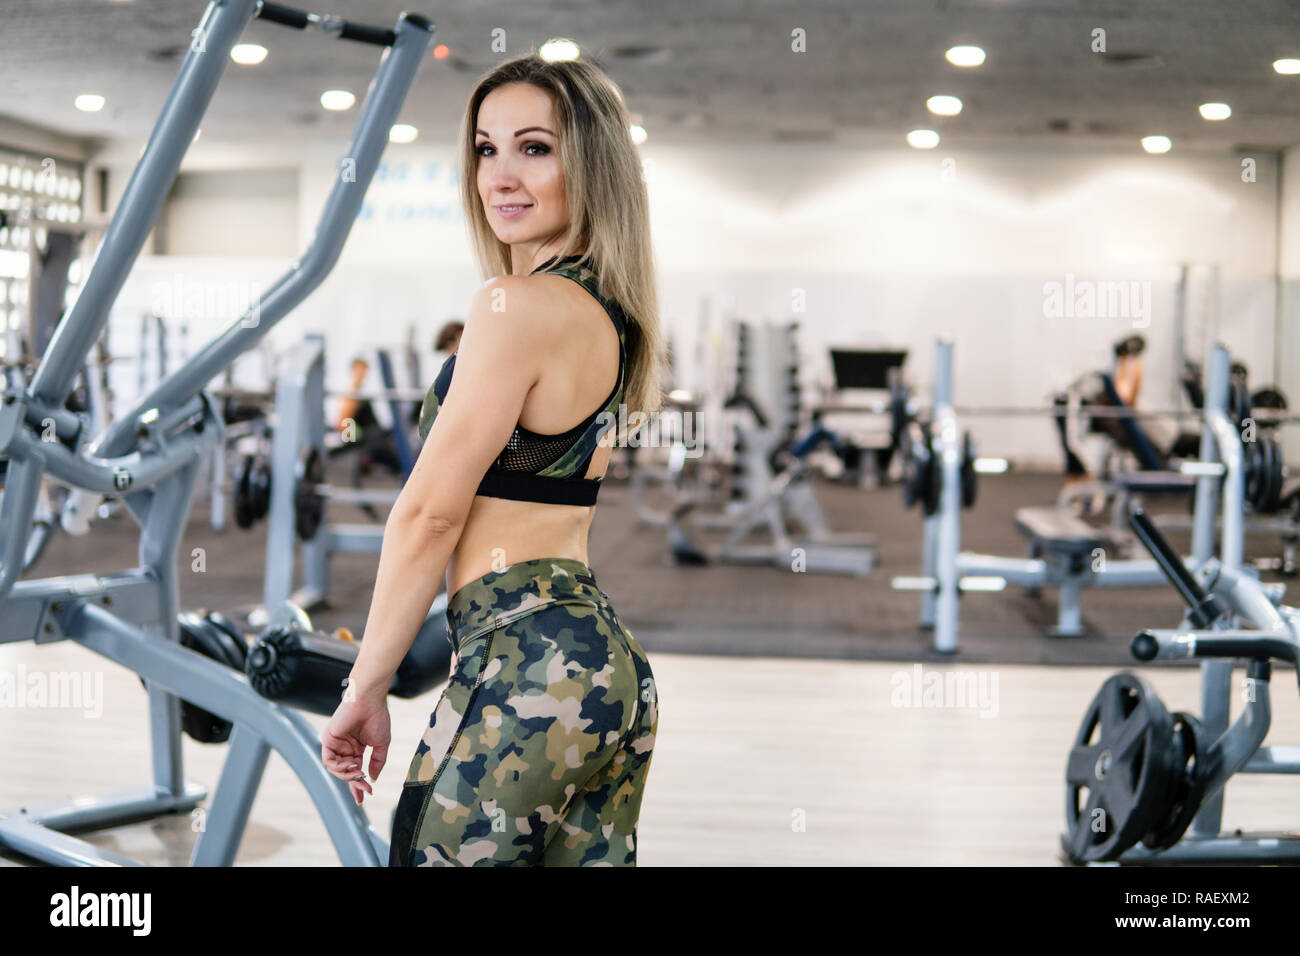 Fitness trainer looks into the camera in the gym - Stock Image